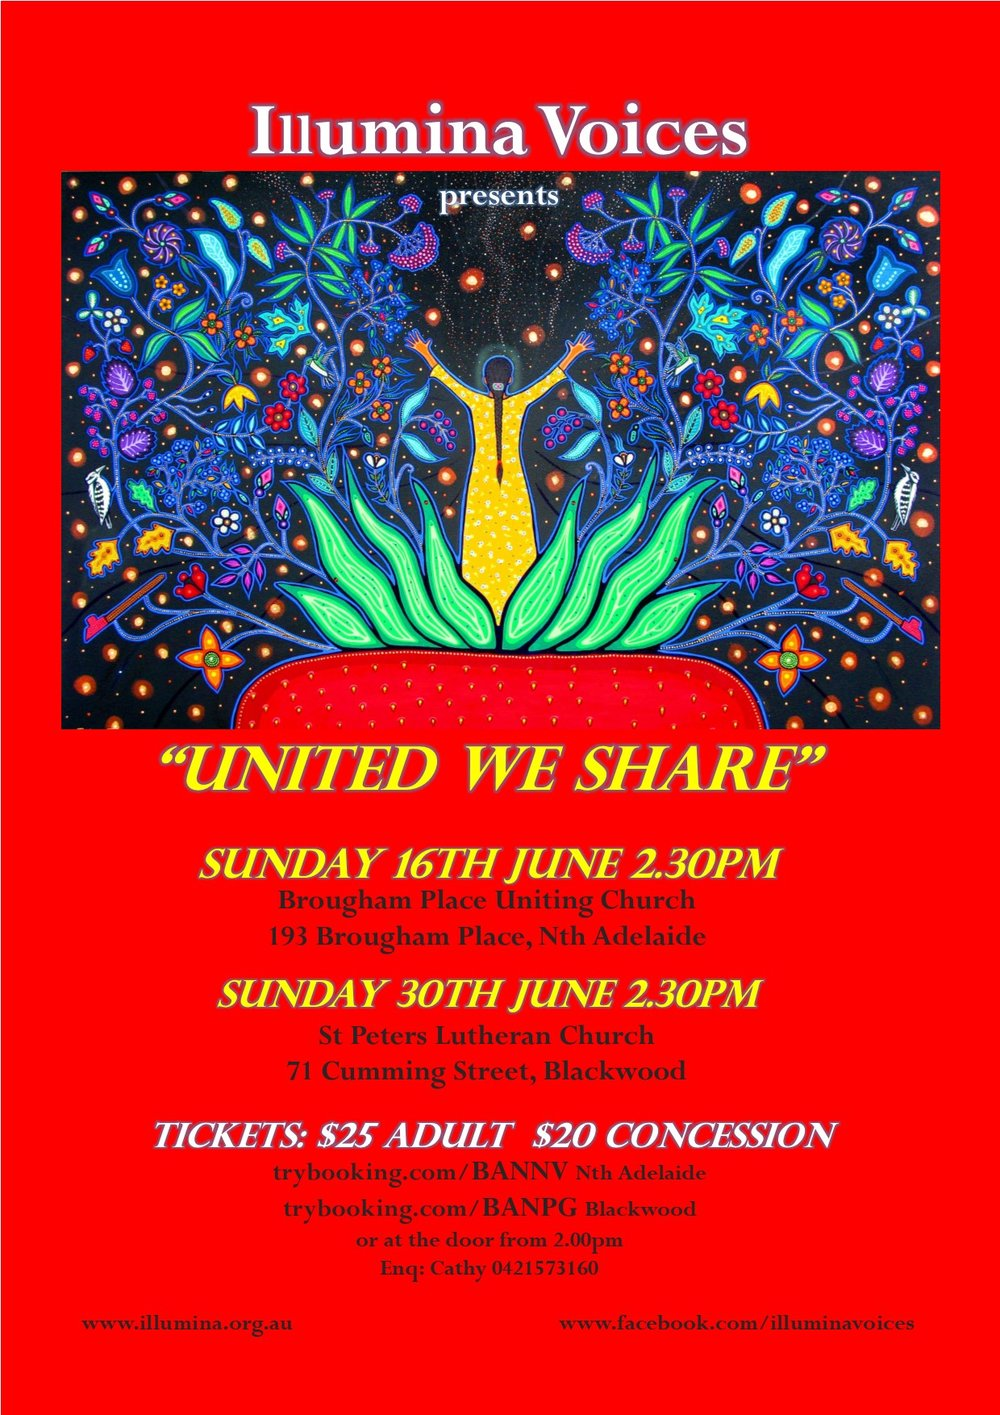 United We Share A4 flyer - June 2019.jpg